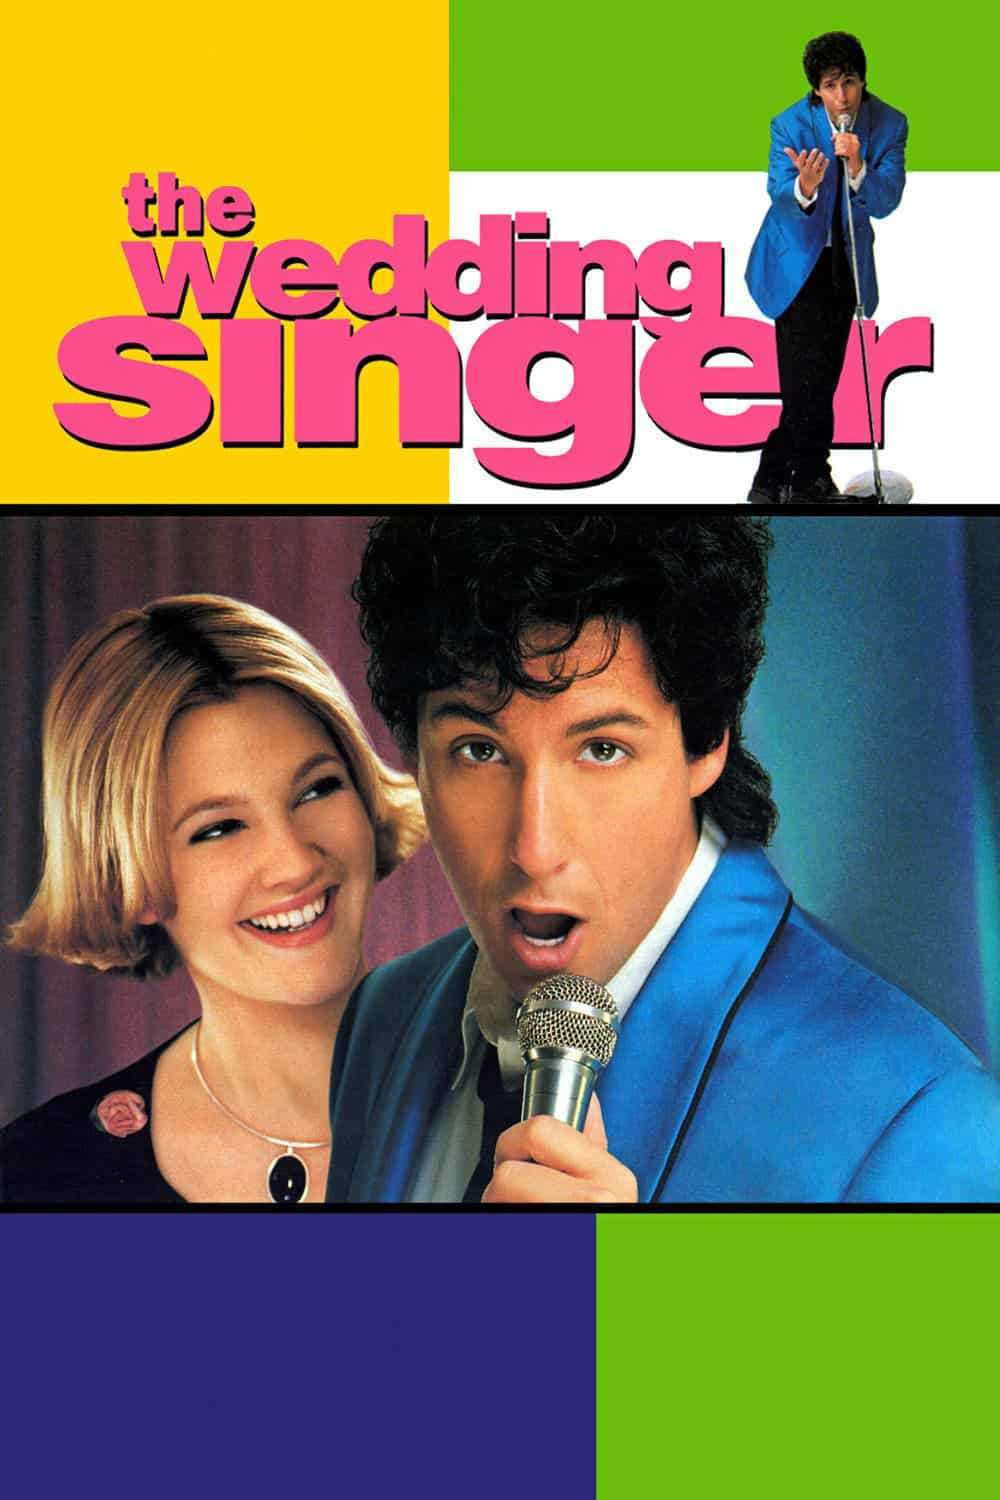 The Wedding Singer, 1998